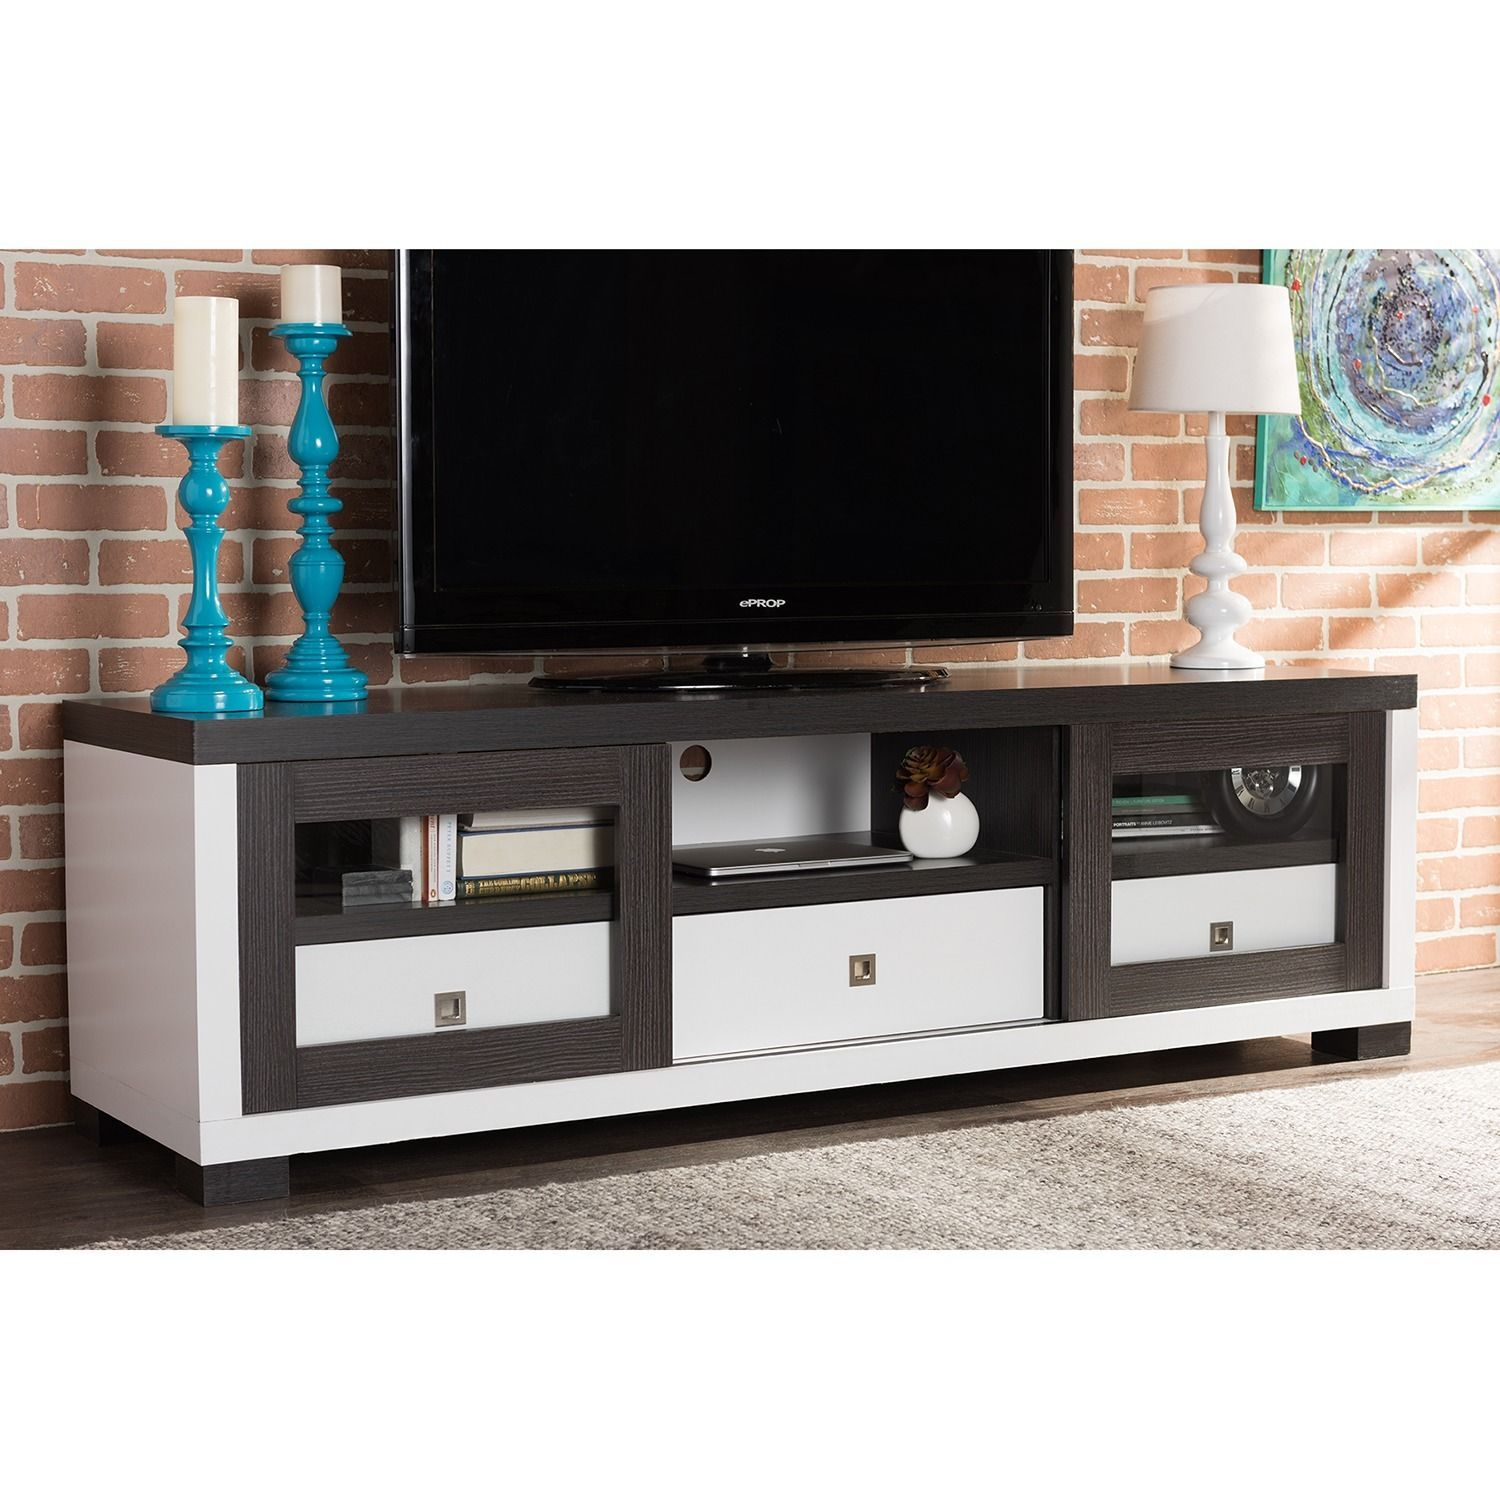 baxton studio oxley 70 inch modern and contemporary two tone white rh pinterest com